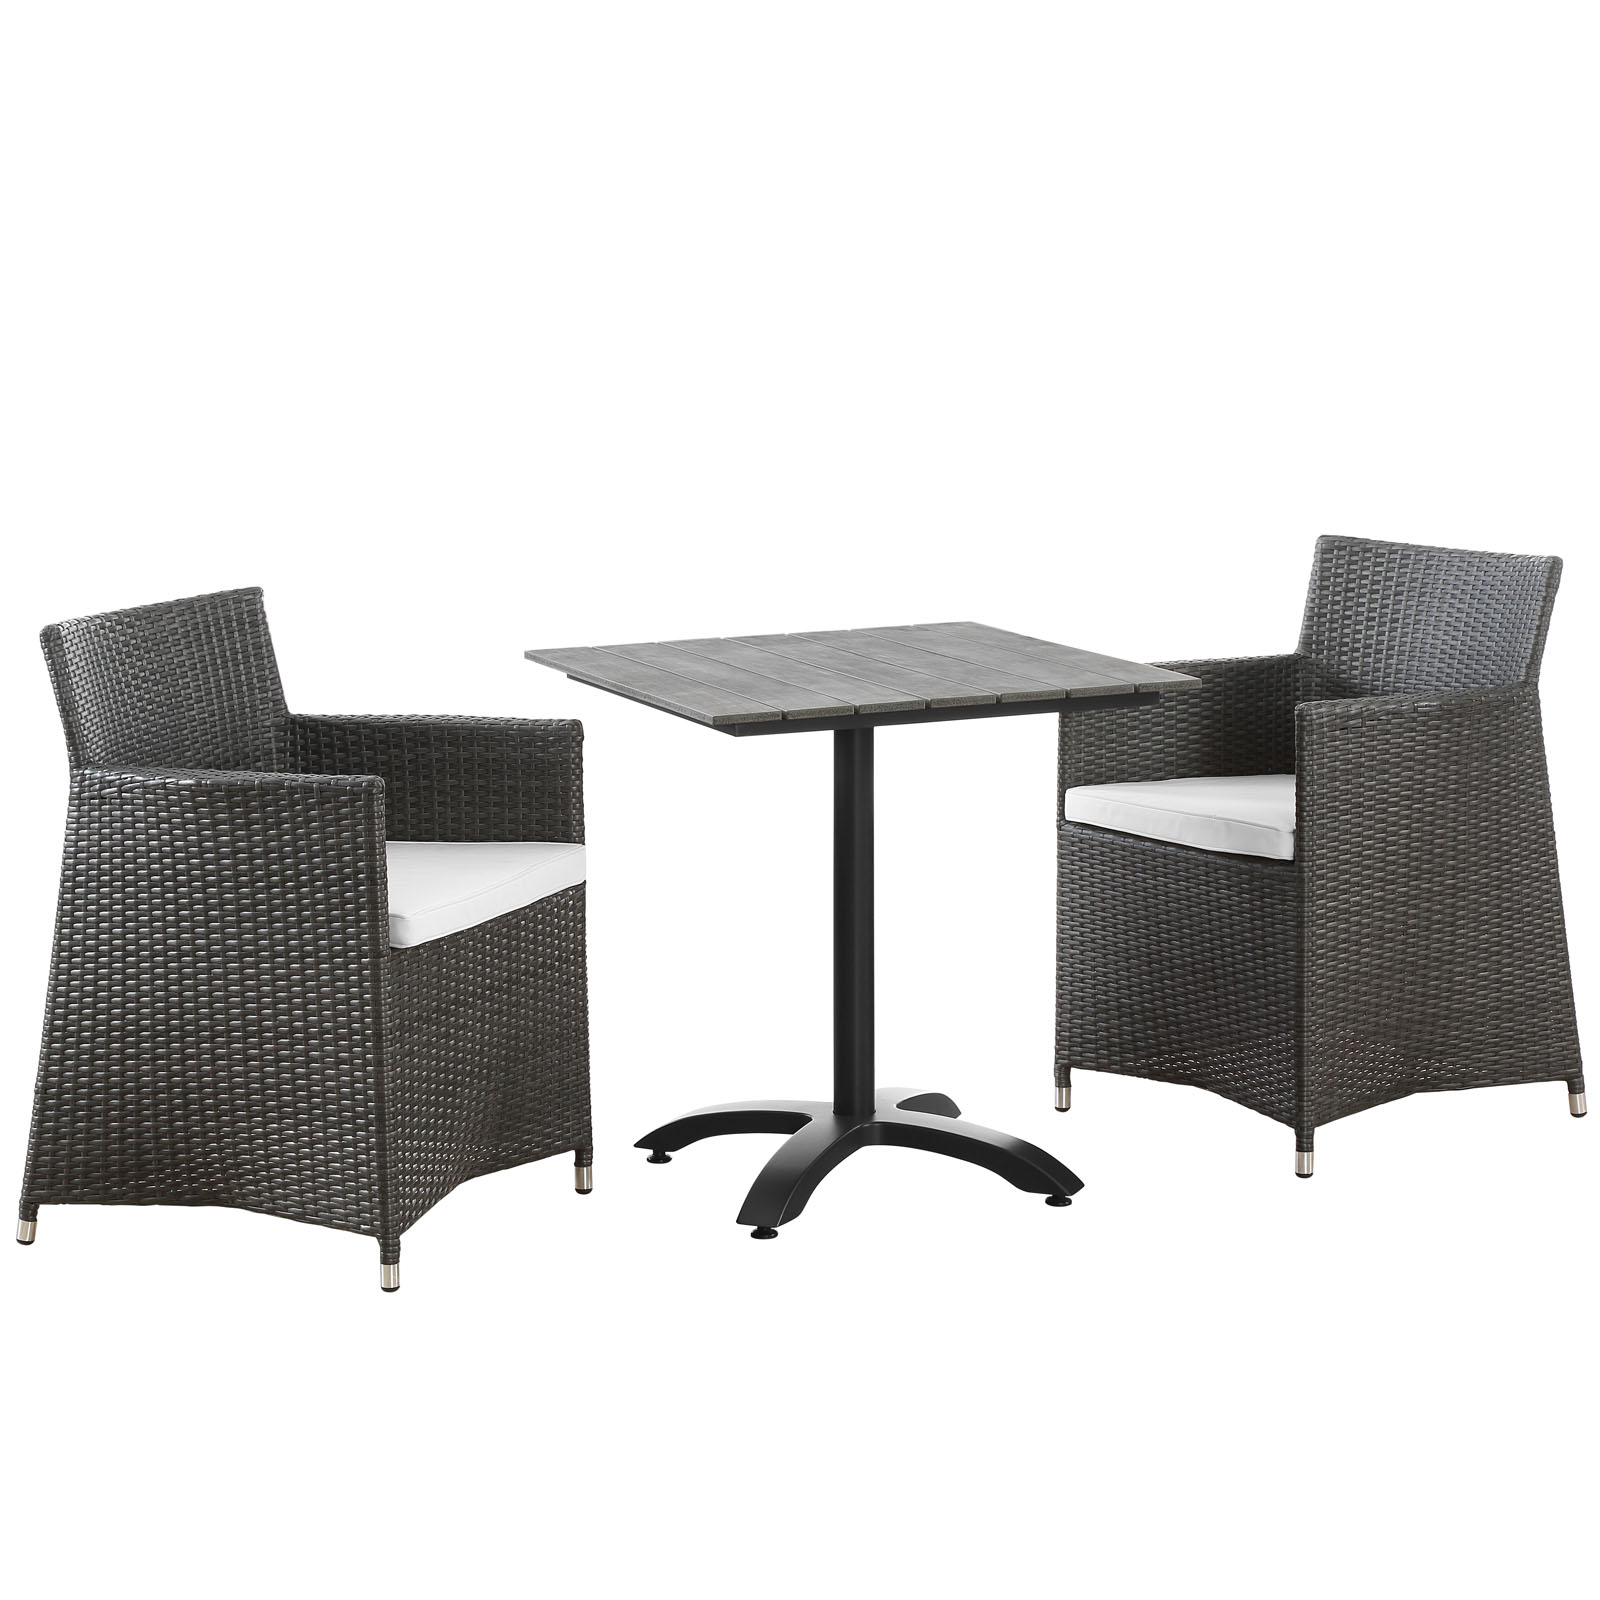 Modern Urban Contemporary 3 pcs Outdoor Patio Dining Room Set, Brown White Plastic by